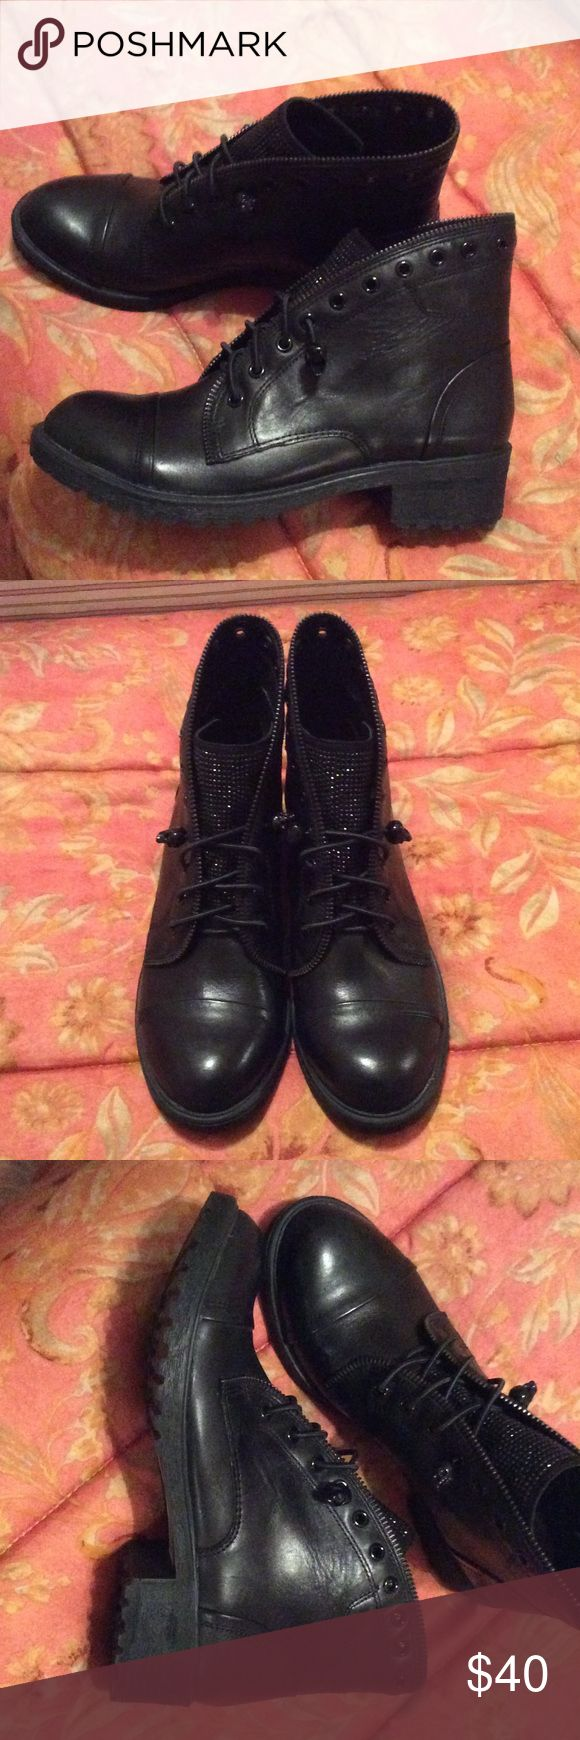 Gianni Bini GB women's Black booties size 5.5m Gianni Bini GB Women's black fire-worx lace-up booties size 5 1/2 m. Rubber bottom leather/fabric upper /fabric man made lining , Never worn tags attached. It did not come in a box Gianni Bini Shoes Ankle Boots & Booties